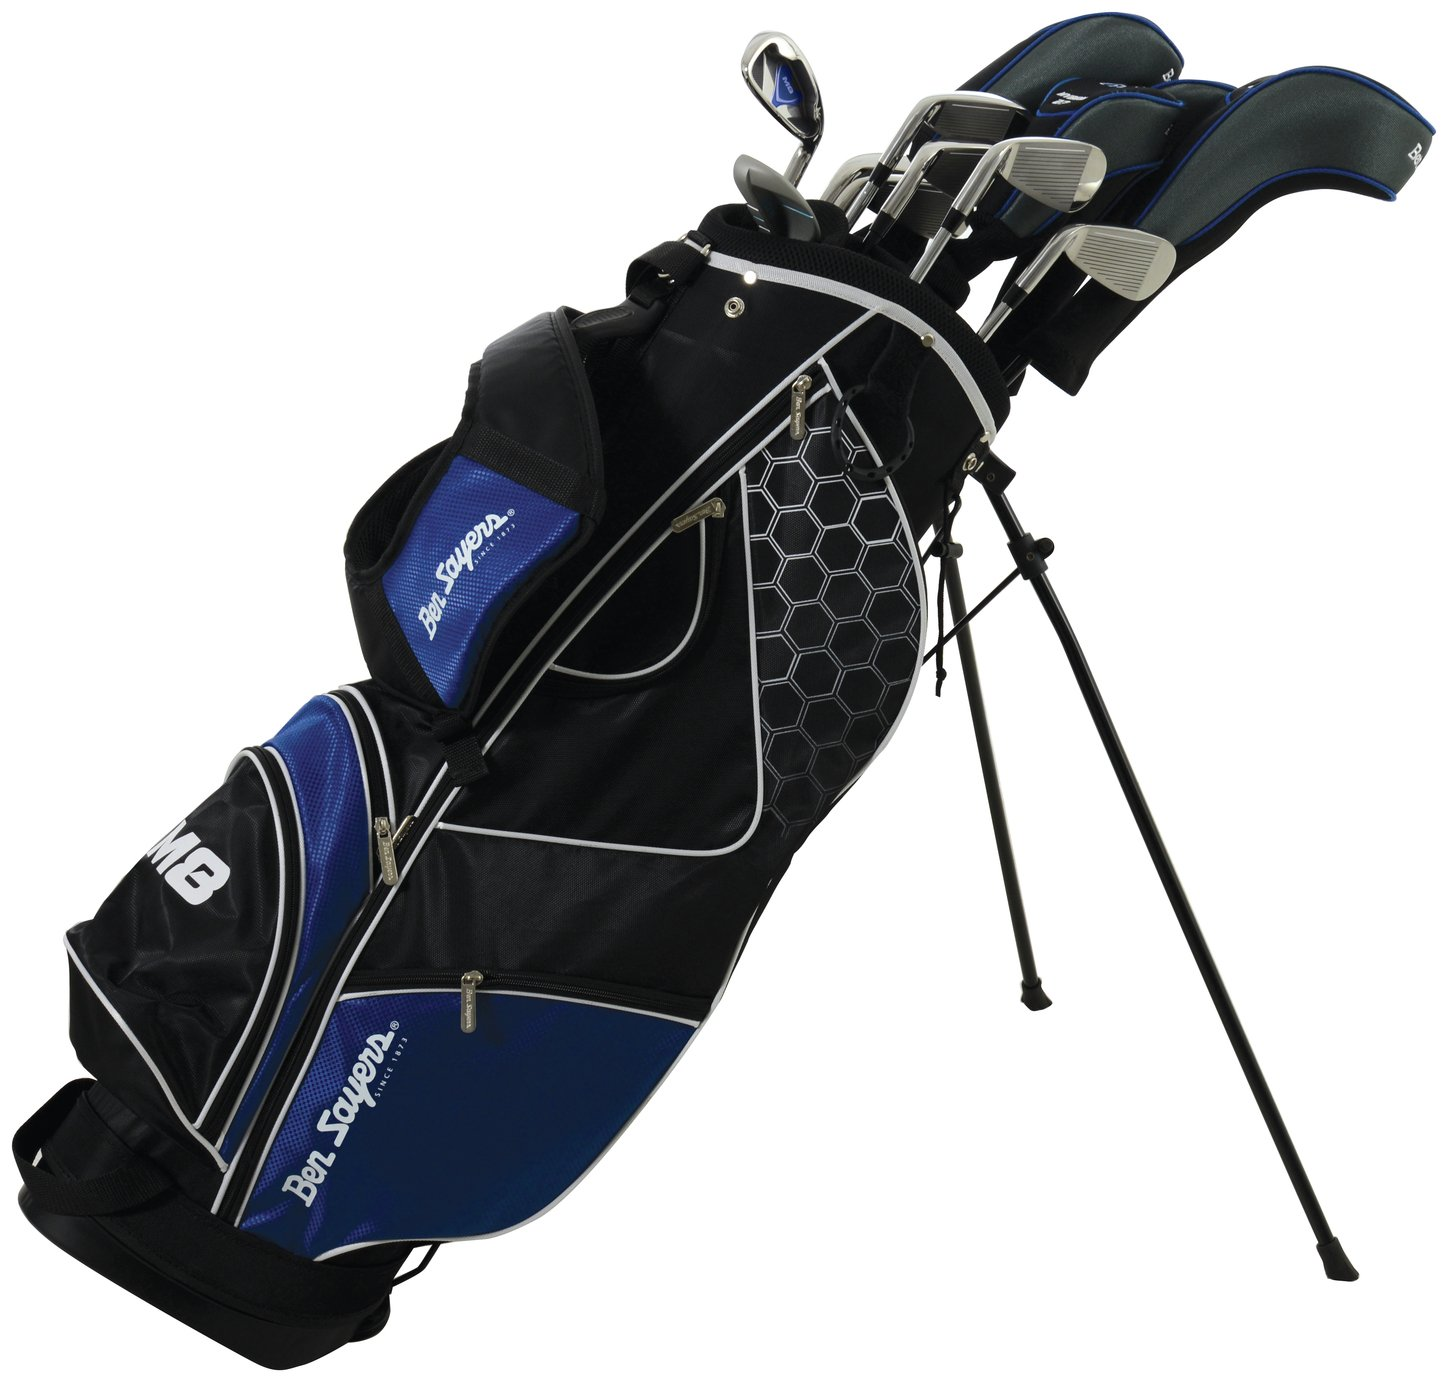 Image of Ben Sayers Mens' M8 Golf Set With Stand Bag - Blue